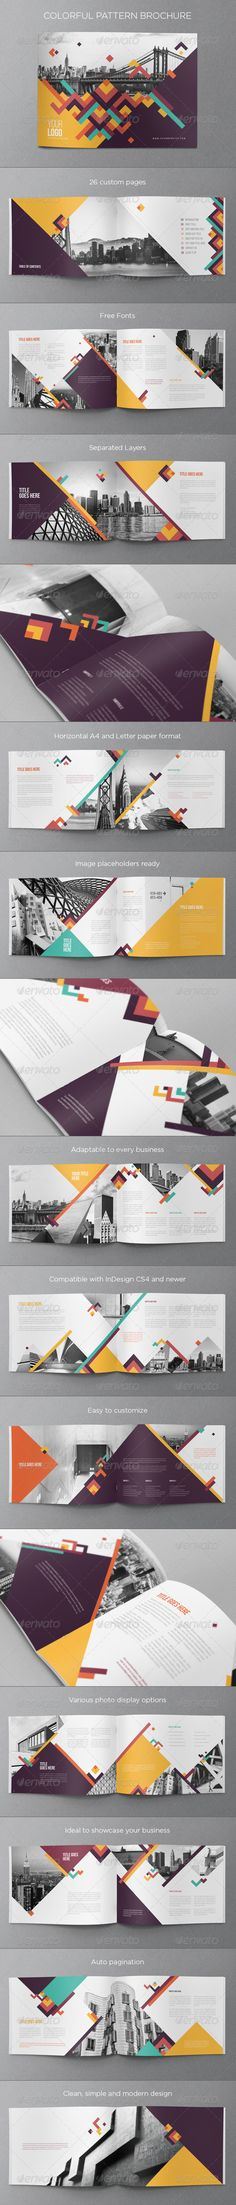 Buy Colorful Pattern Brochure by AbraDesign on GraphicRiver. COLORFUL PATTERN BROCHURE This brochure is an ideal way to showcase your business in an original way. Design Brochure, Booklet Design, Brochure Layout, Graphic Design Layouts, Layout Design, Graphic Design Inspiration, Layout Inspiration, Creative Brochure, Brochure Template